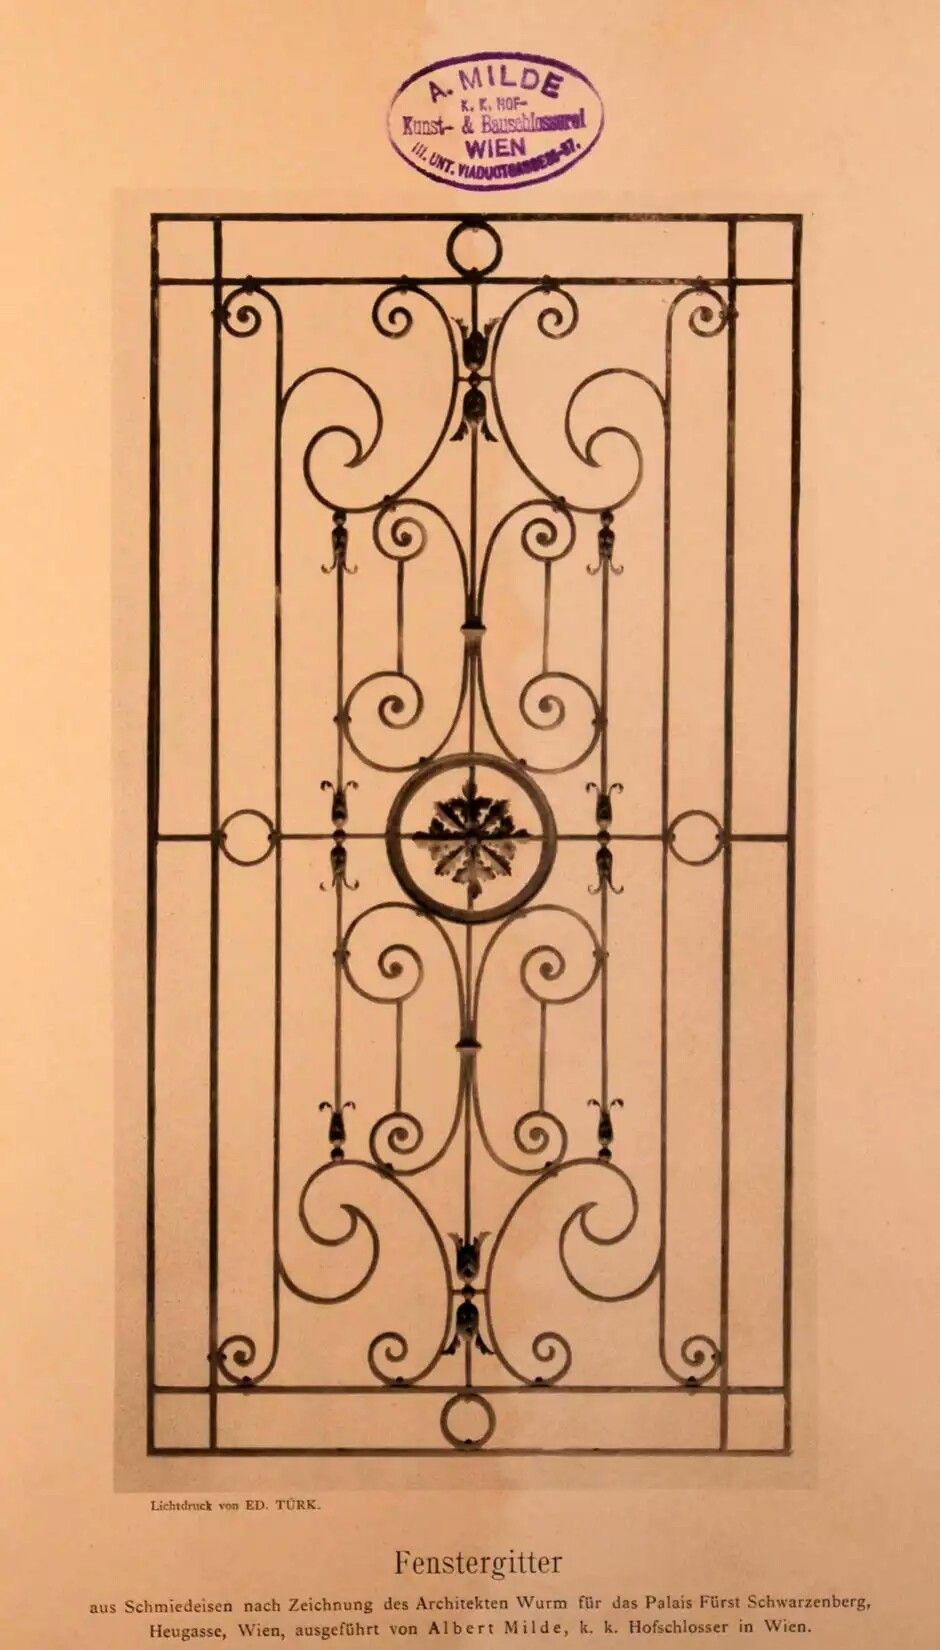 Pin by WALTER CARABAJAL on soldadura | Pinterest | Wrought iron ...